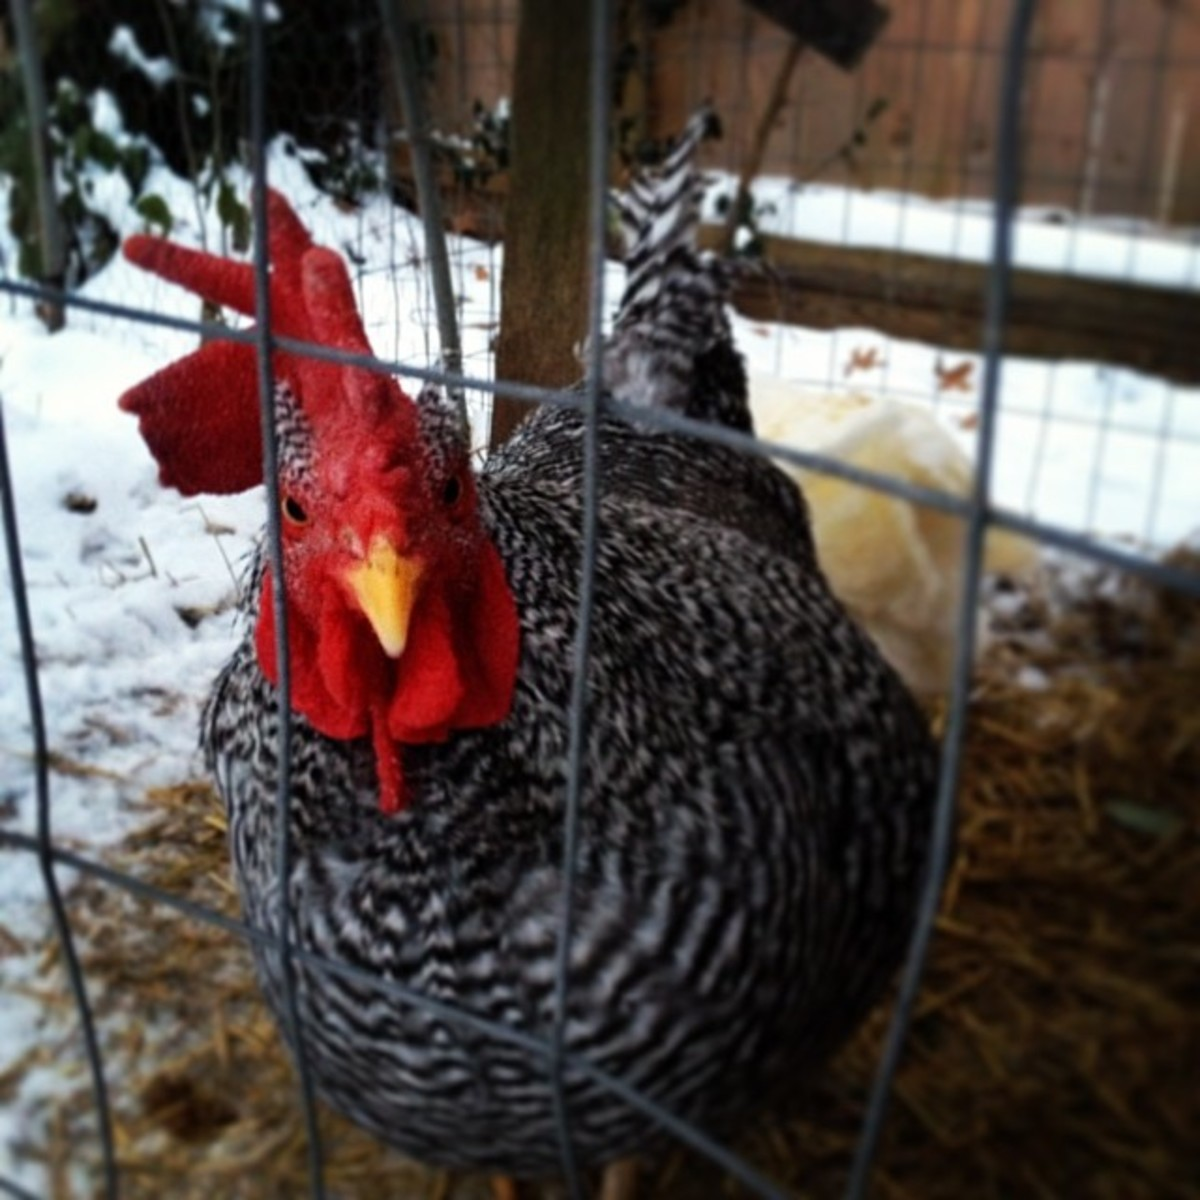 I acquired Zeus from an ad for a free rooster on CraigsList.